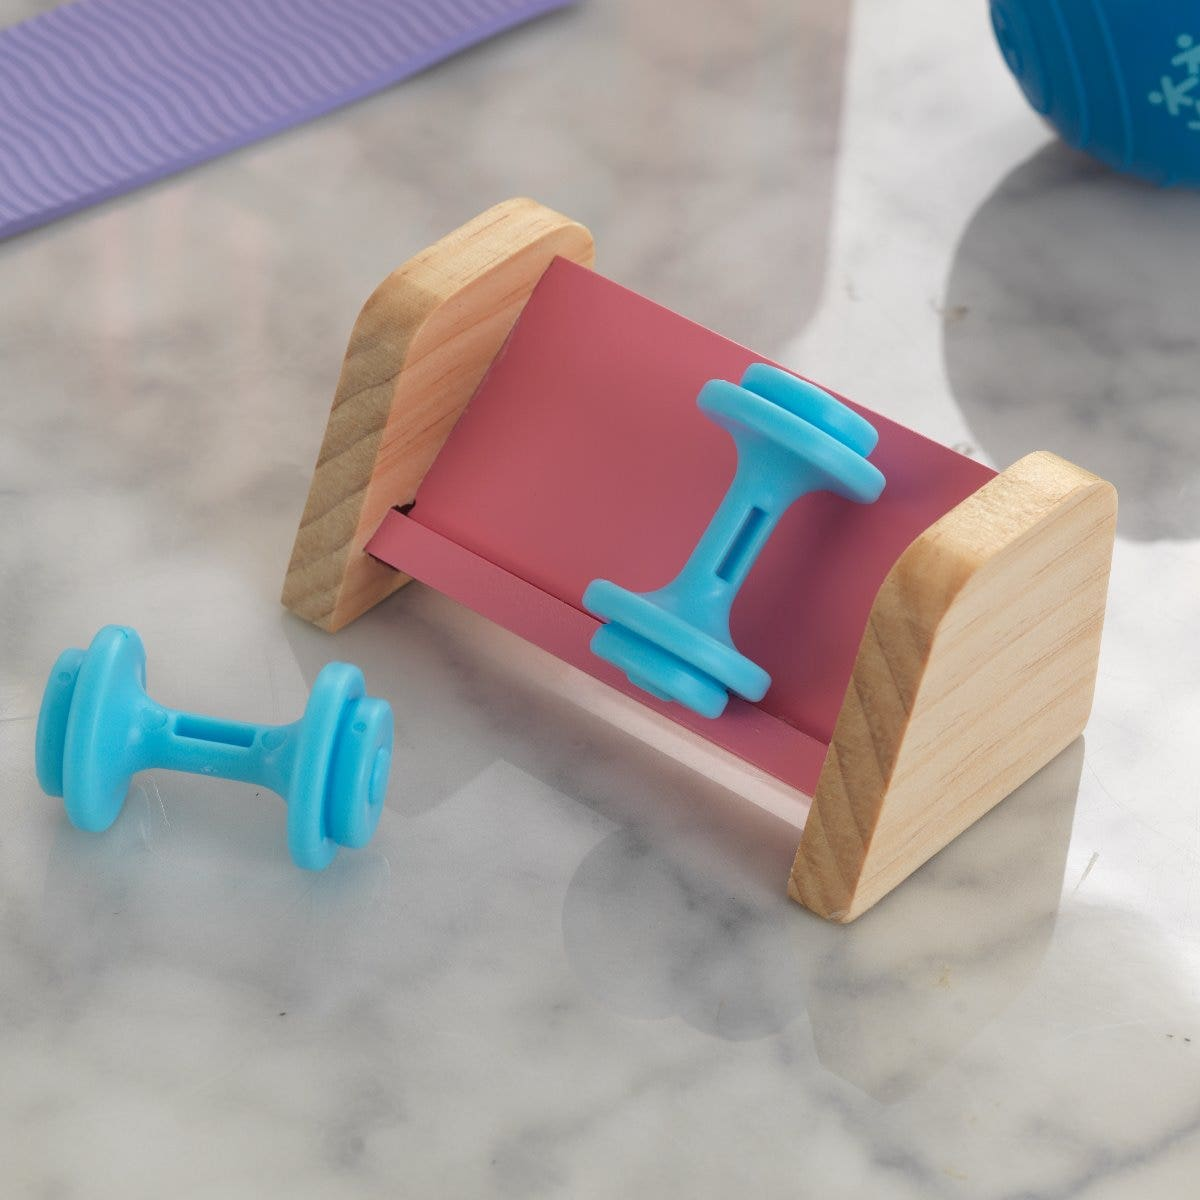 2 dumbbell weights